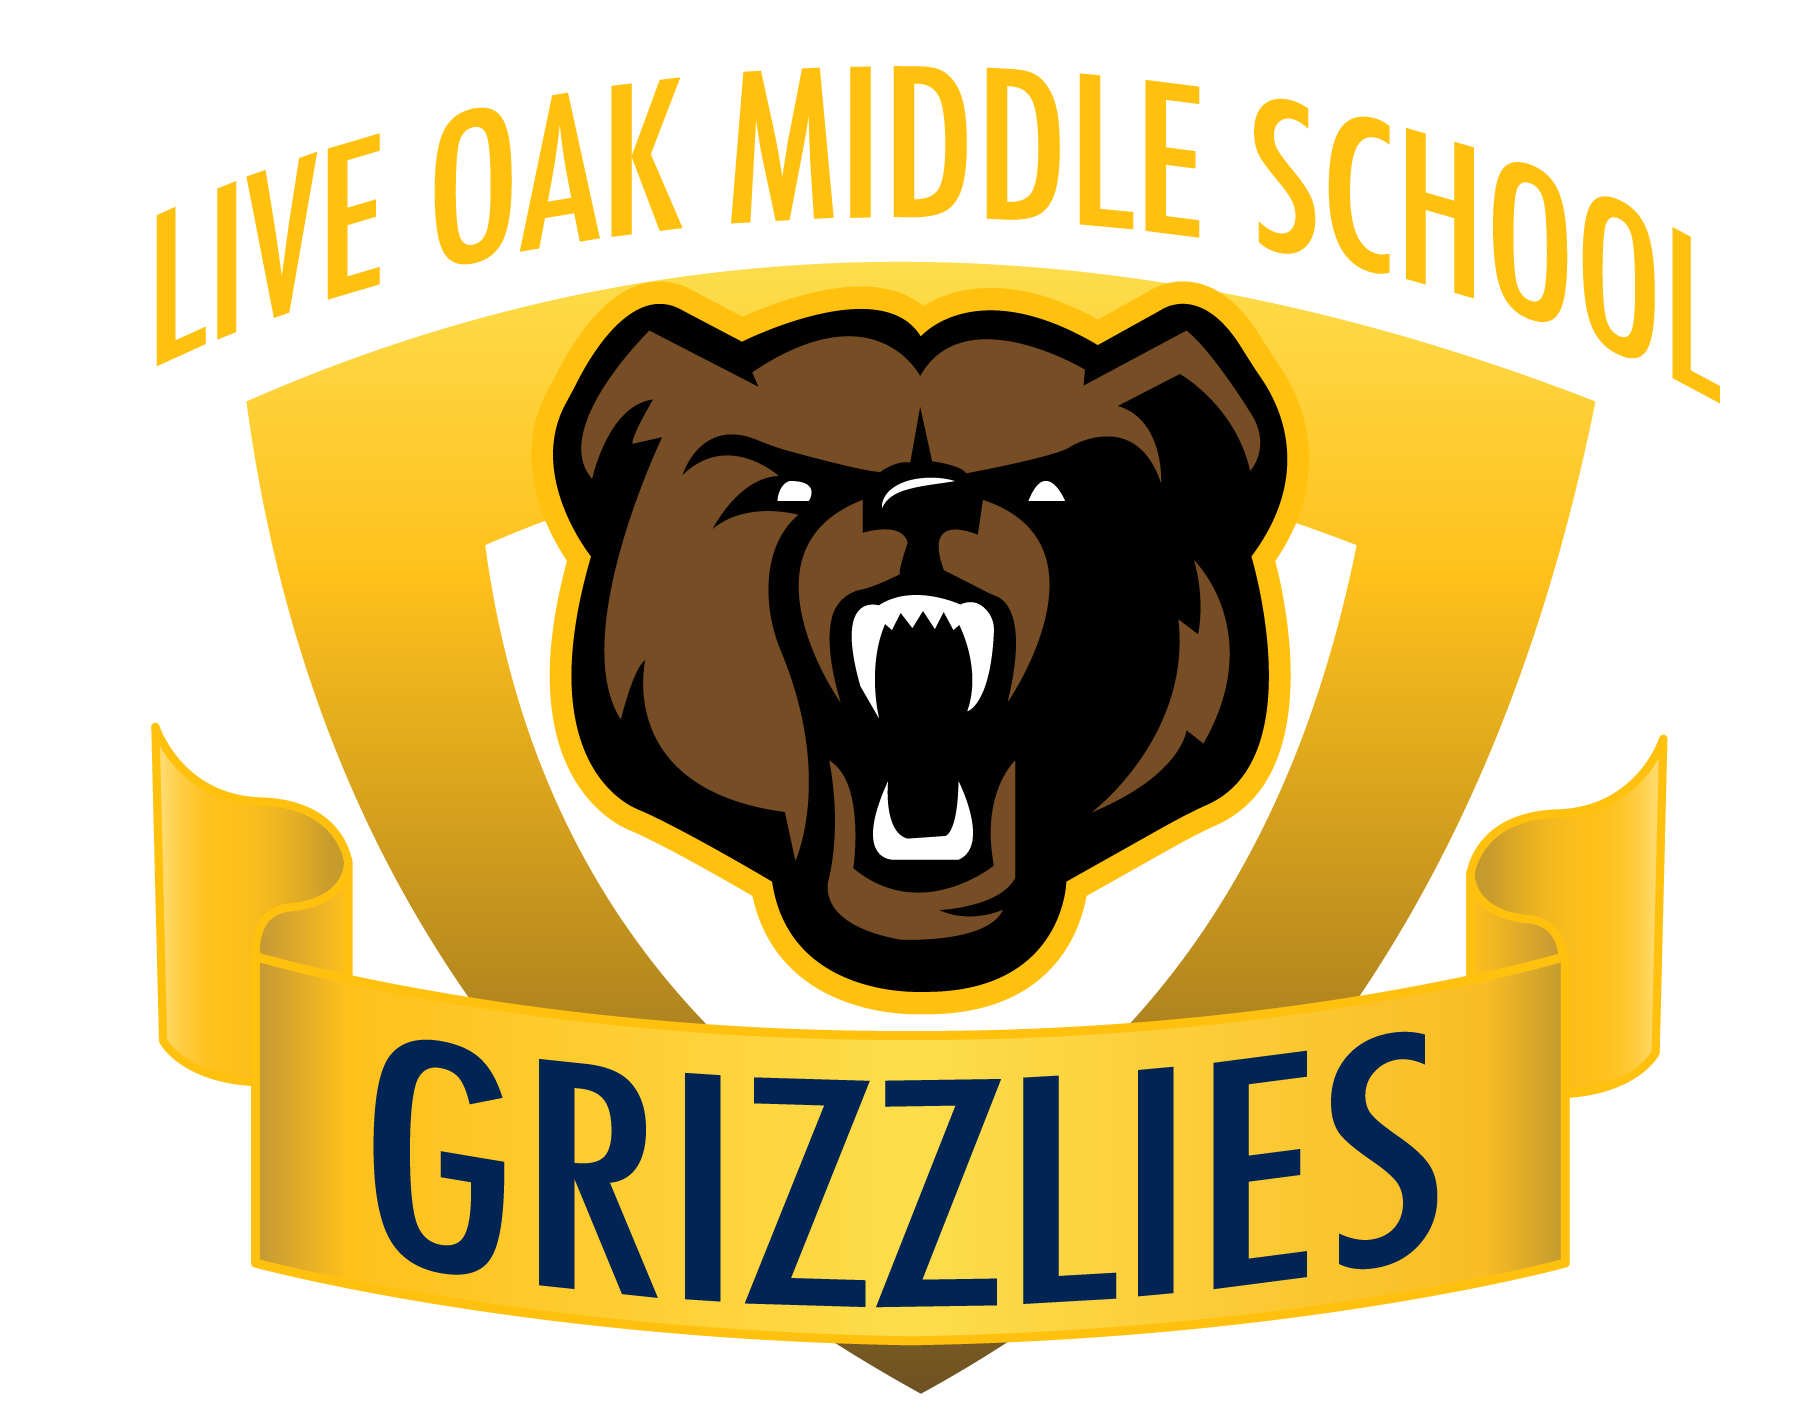 Live Oak Middle School